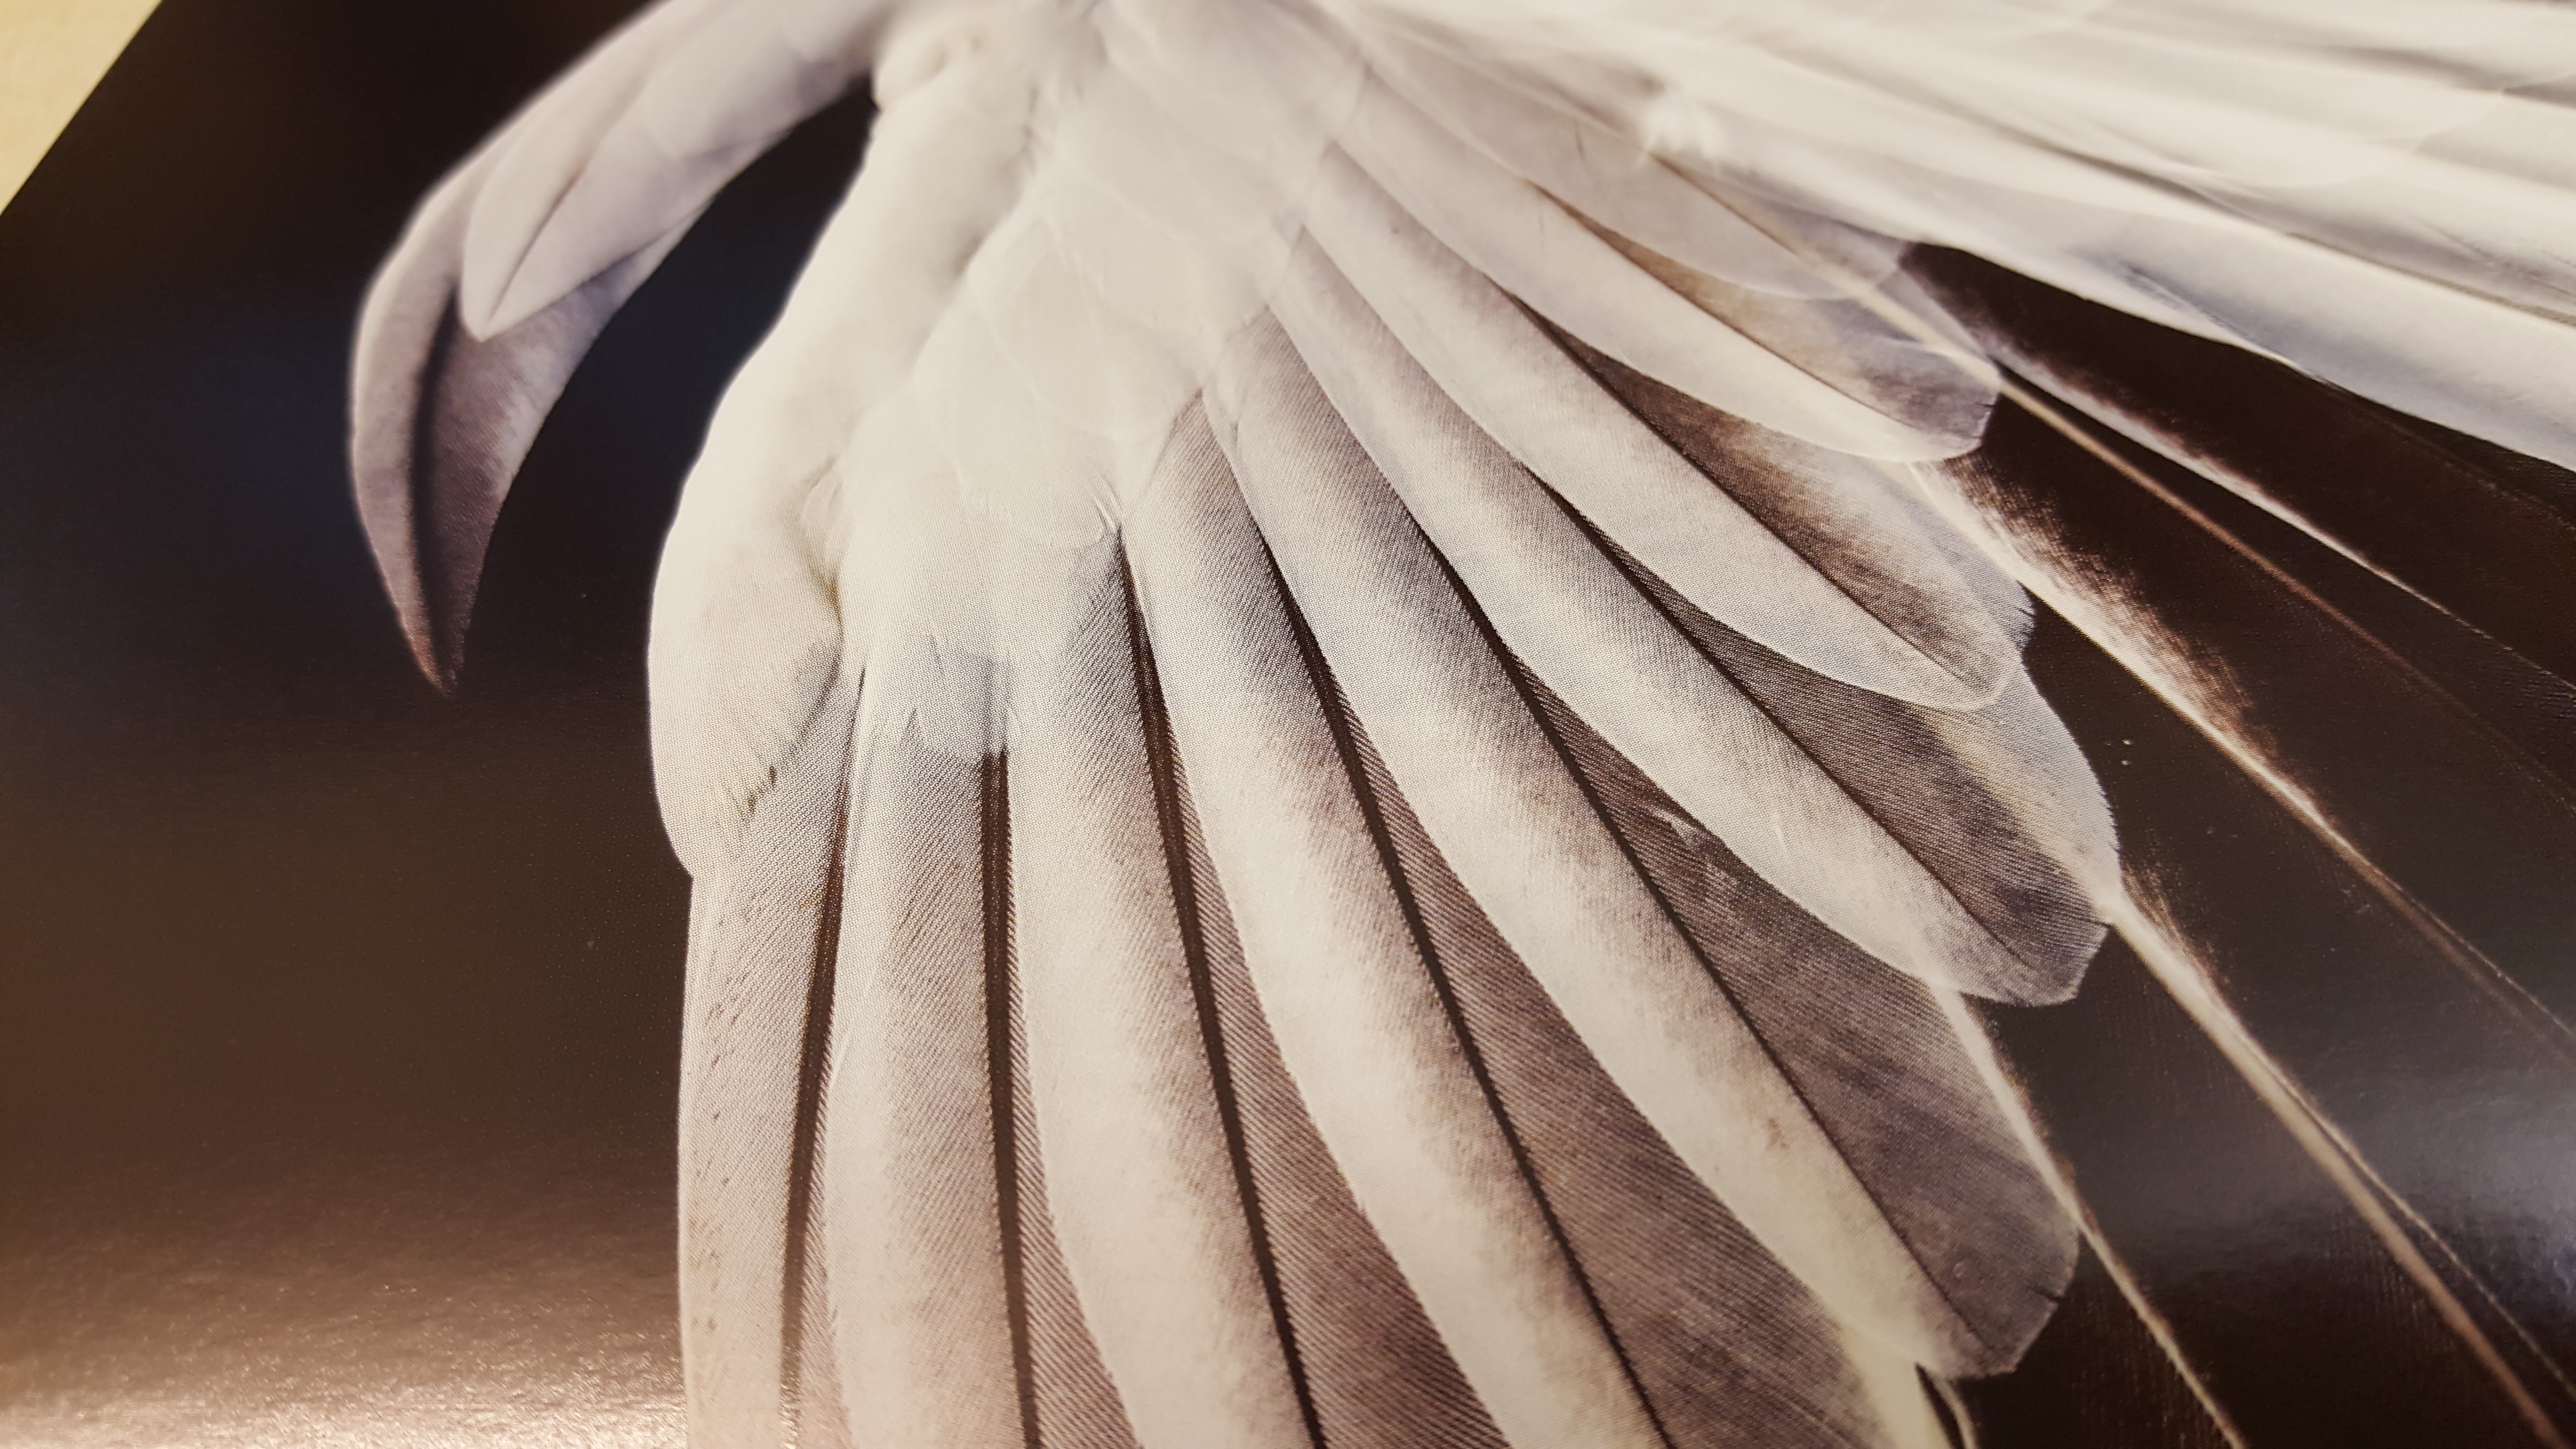 The lesser snow goose has two color phases: a dark (blue) plumage and a white (snow) plumage, so it is also known as the blue goose.